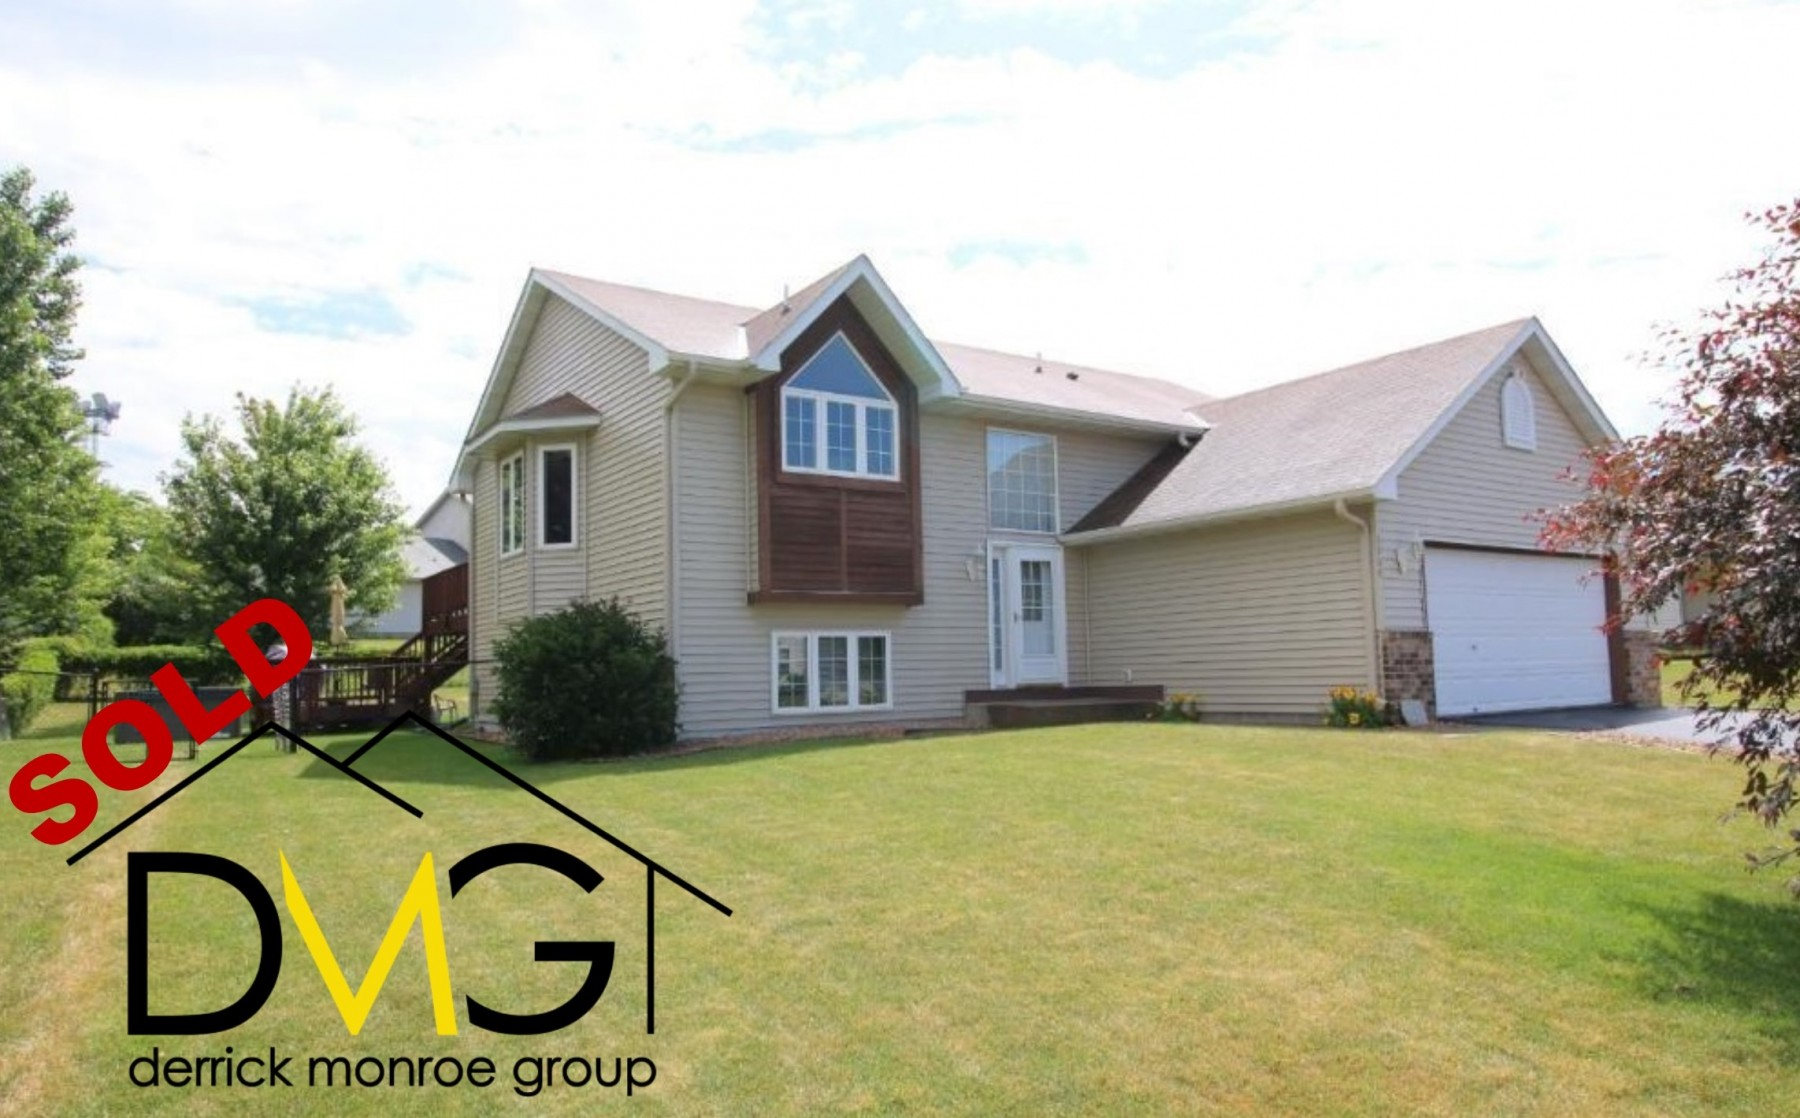 rockford home sold by derrick monroe